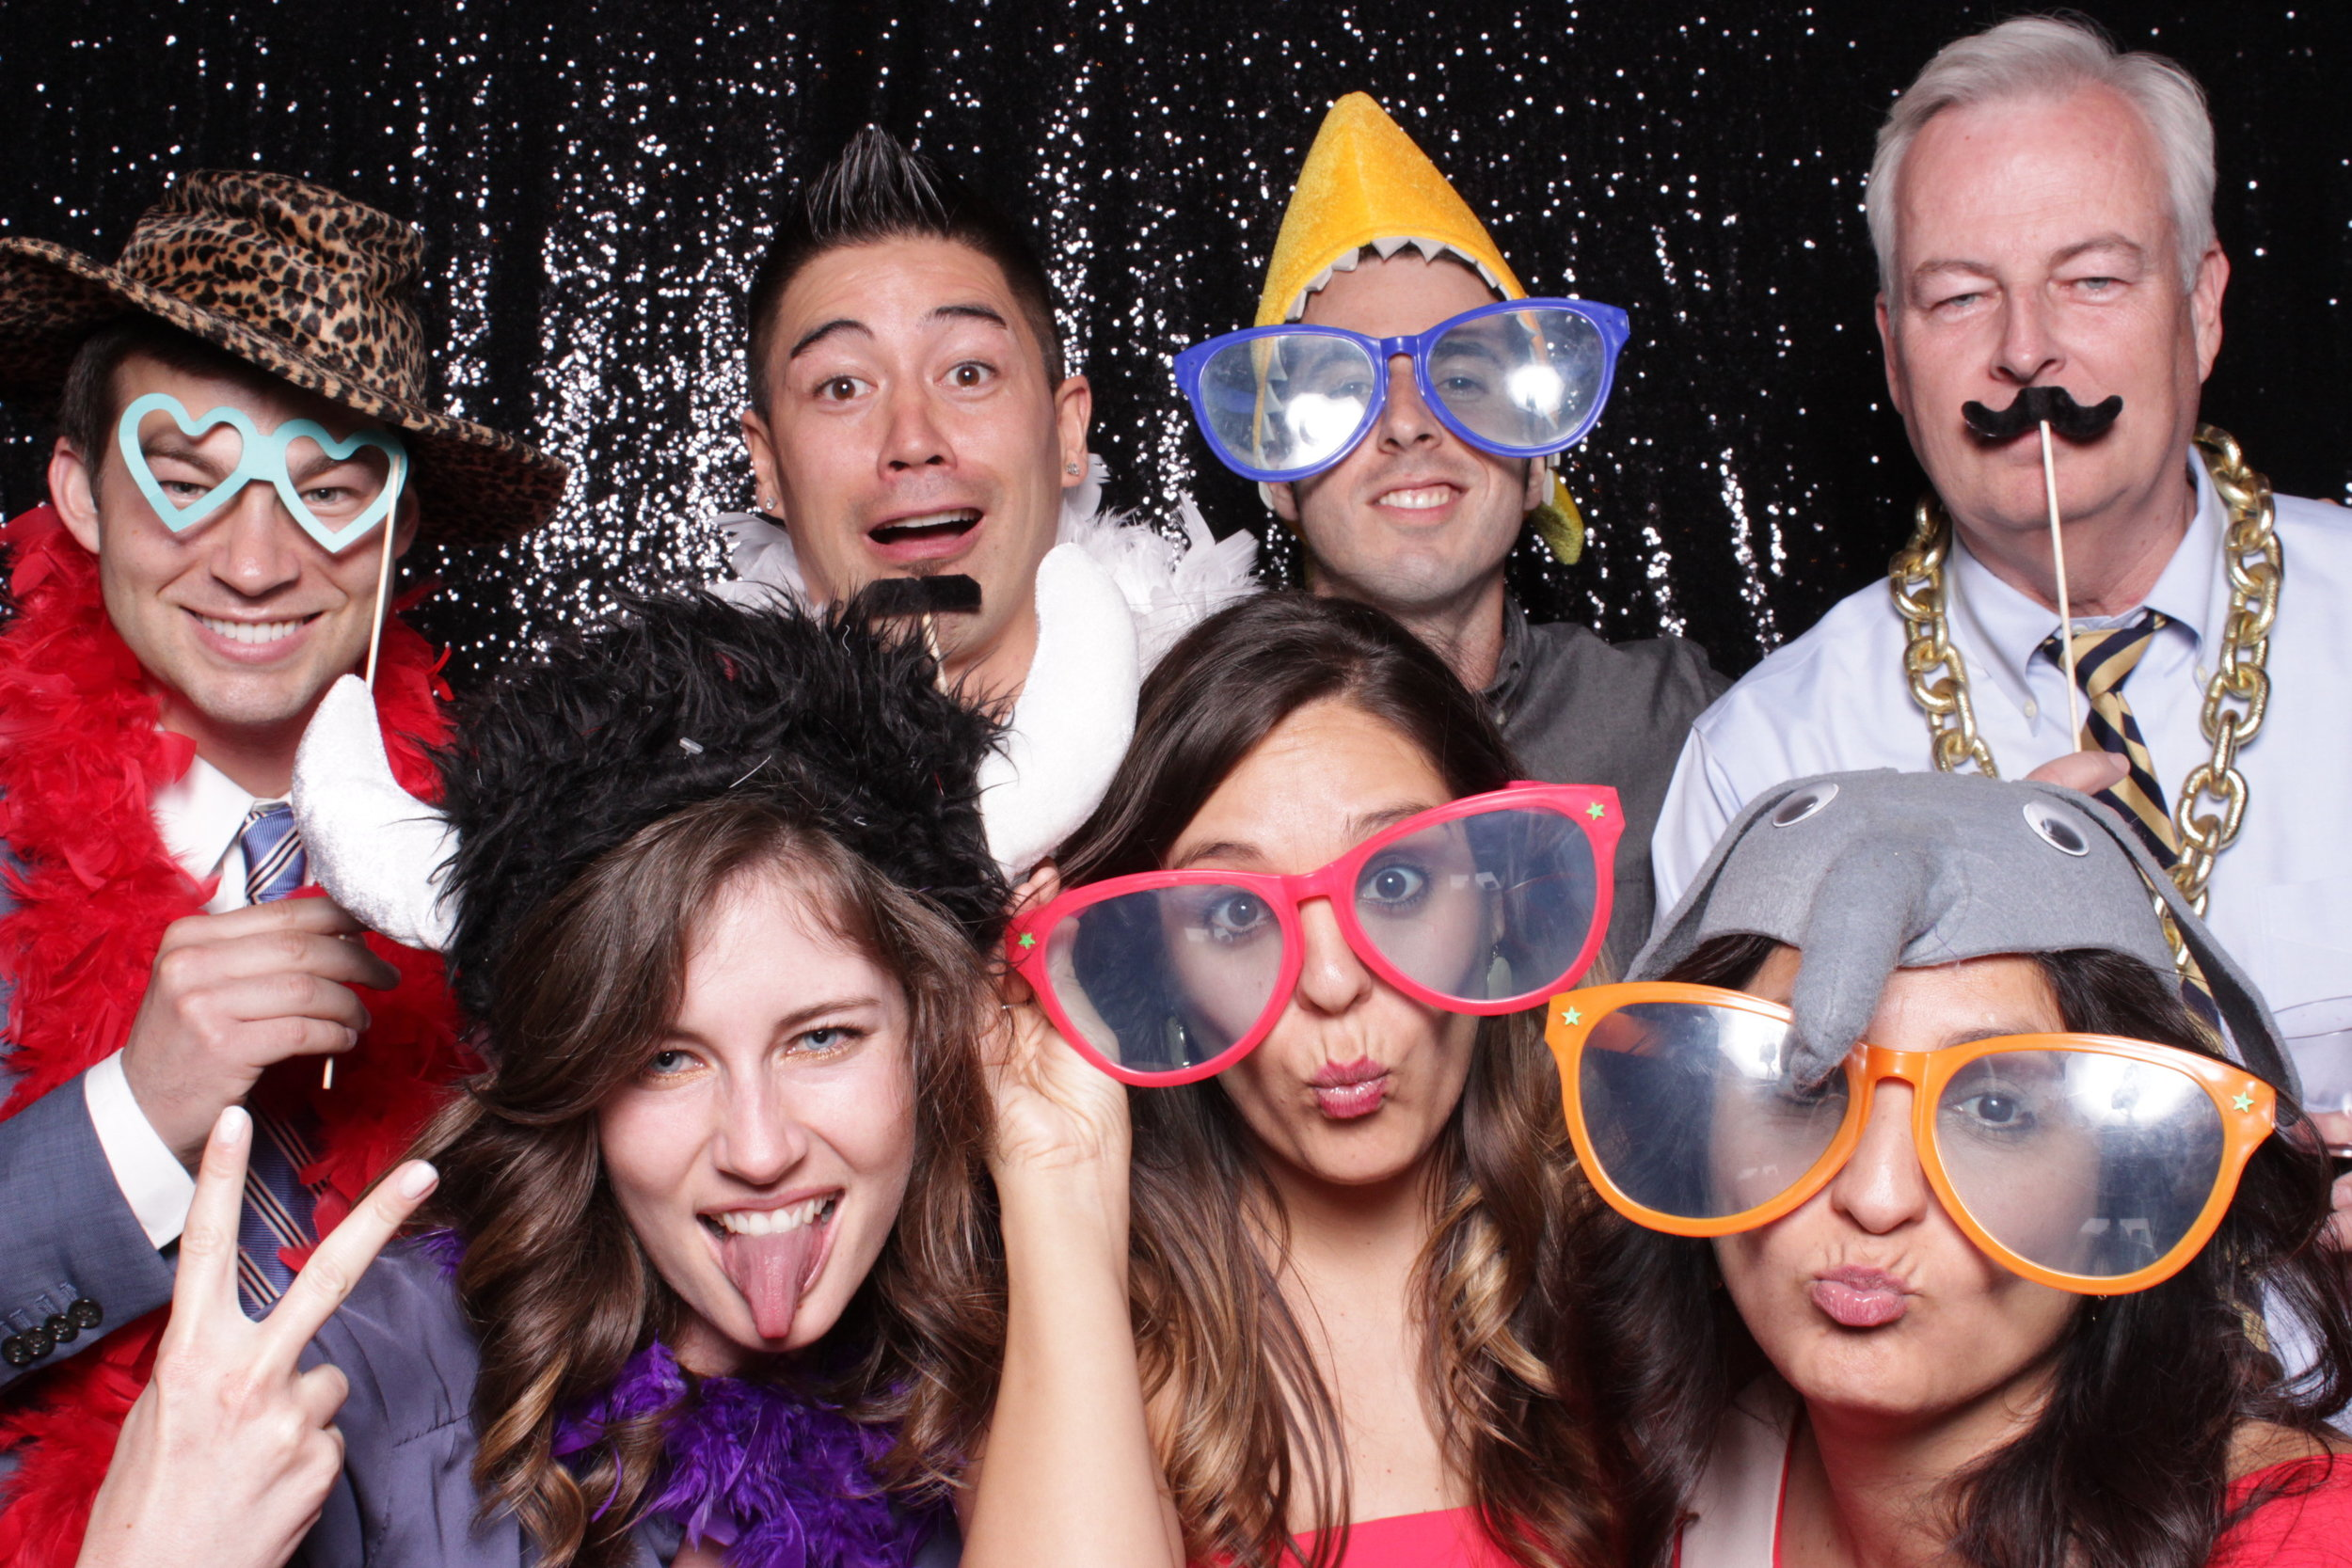 chico-weddings-photo-booth-rentals-best